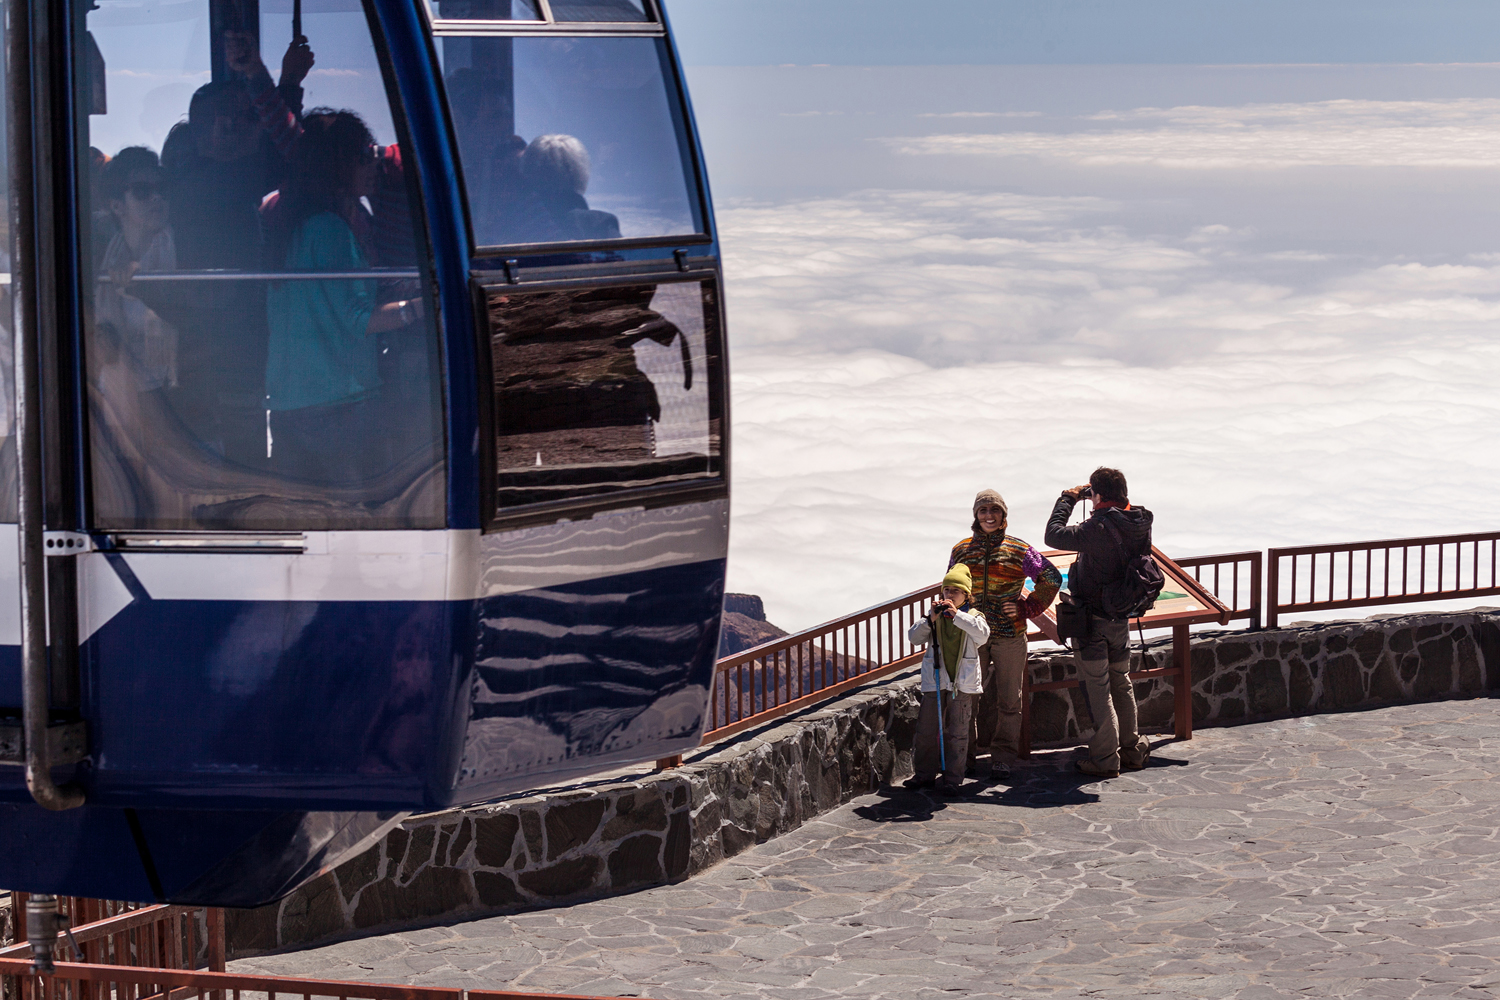 The Mount Teide hike with the help of the Cable Car